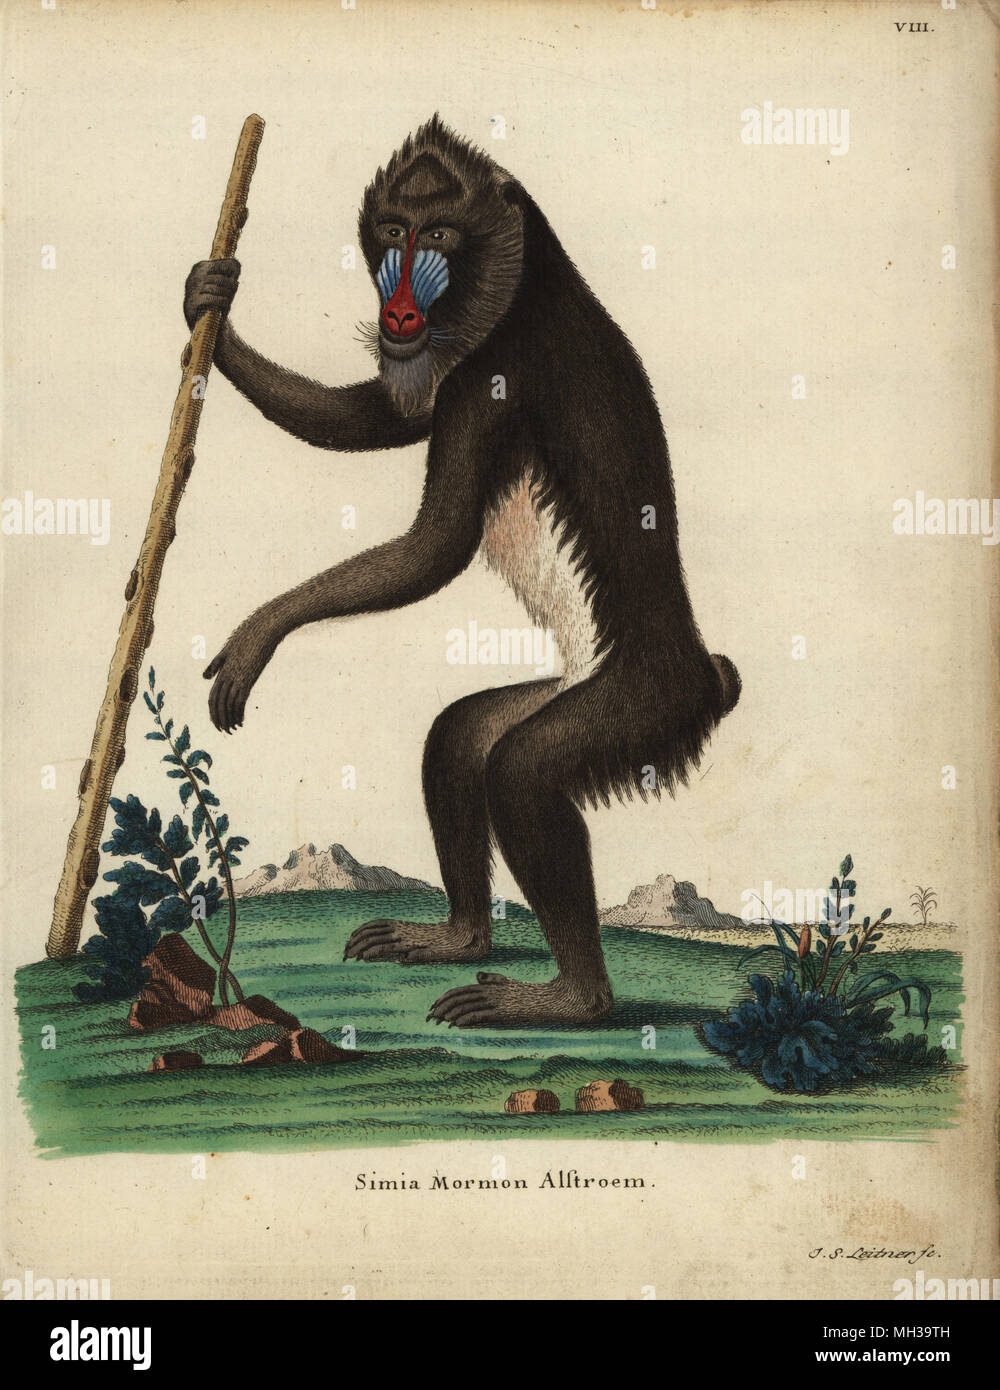 Mandrill, Mandrillus sphinx. Vulnerable. Simia mormon Alstroem. Handcoloured copperplate engraving by Johann Sebastian Leitner from Johann Christian Daniel Schreber's Animal Illustrations after Nature, or Schreber's Fantastic Animals, Erlangen, Germany, 1775. - Stock Image